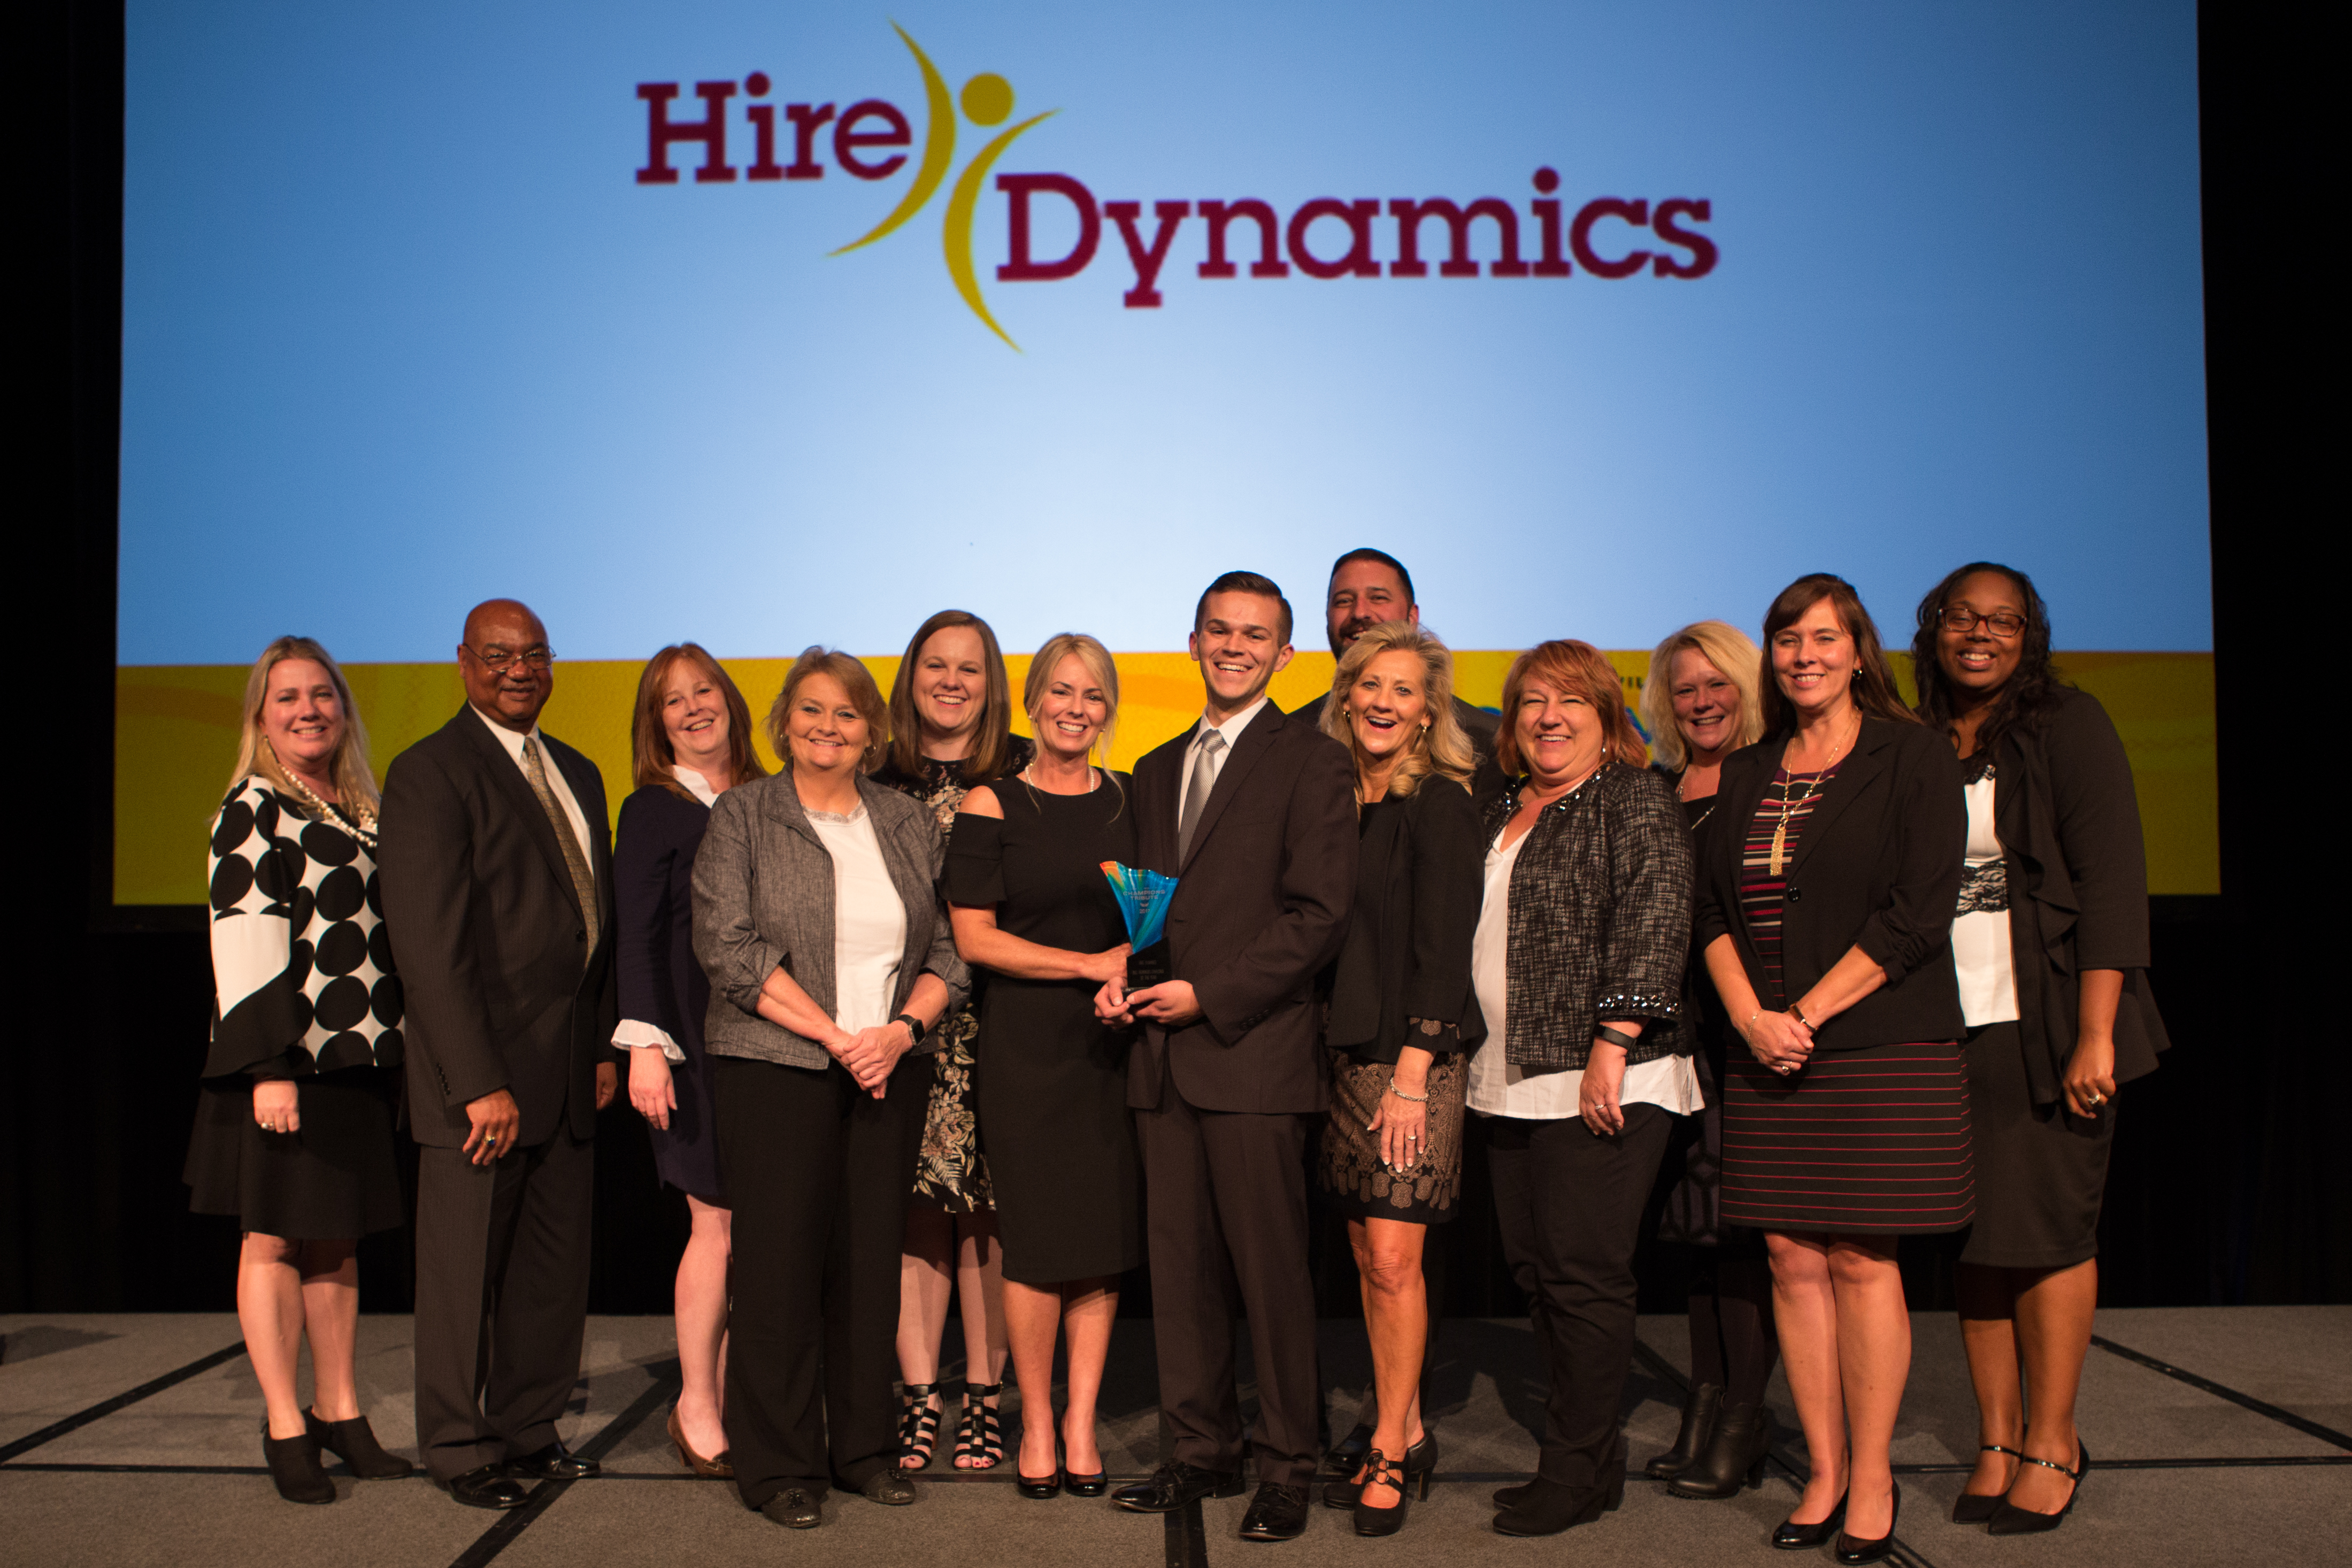 Goodwill Greenville Sc >> Greenville S Hire Dynamics Honored By Goodwill Industries